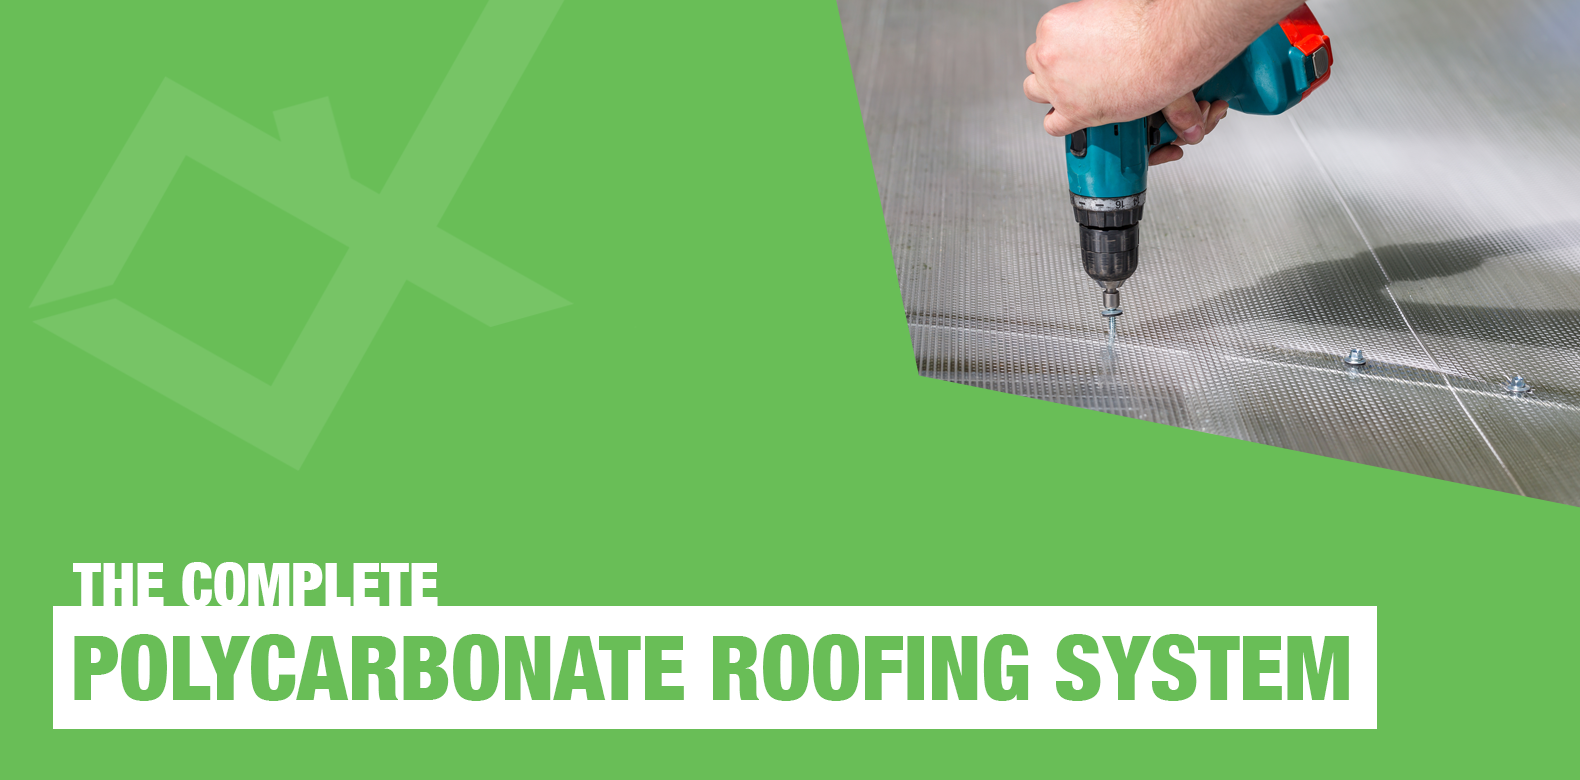 The Complete Polycarbonate Roofing System